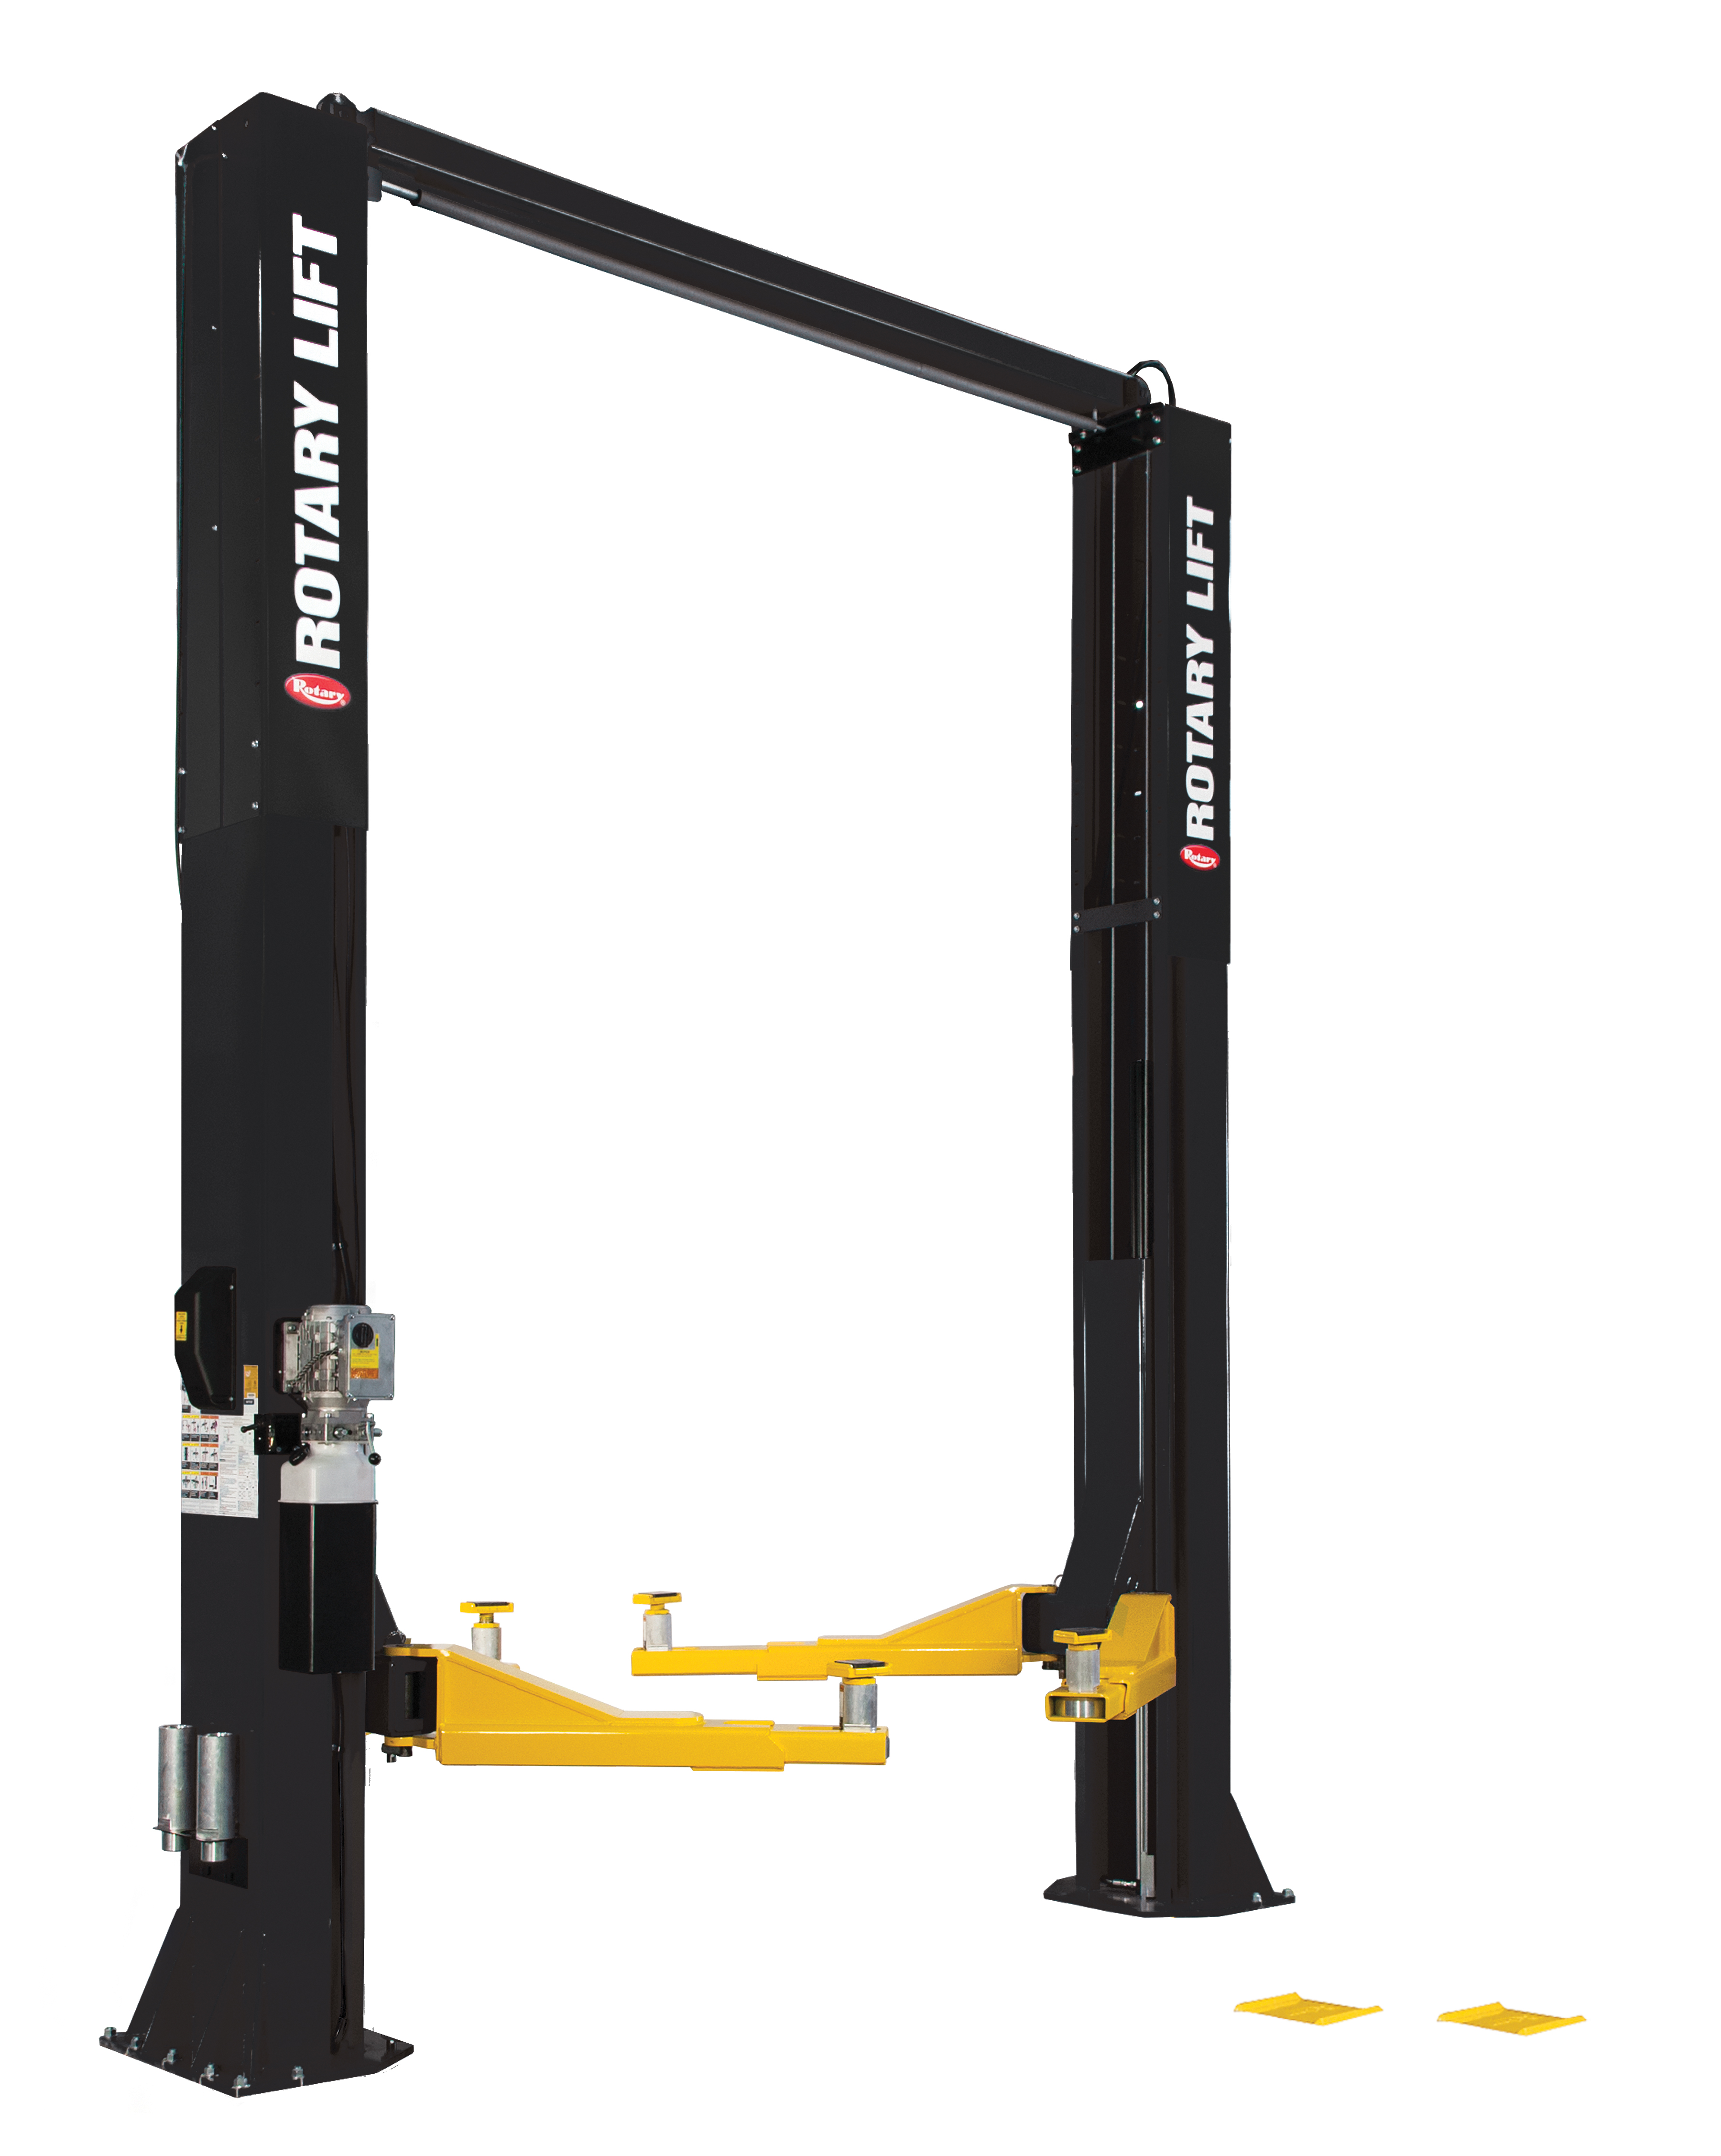 Rotary® SPO20 Trio Arms Certified Overhead 2-Post Lift BLACK